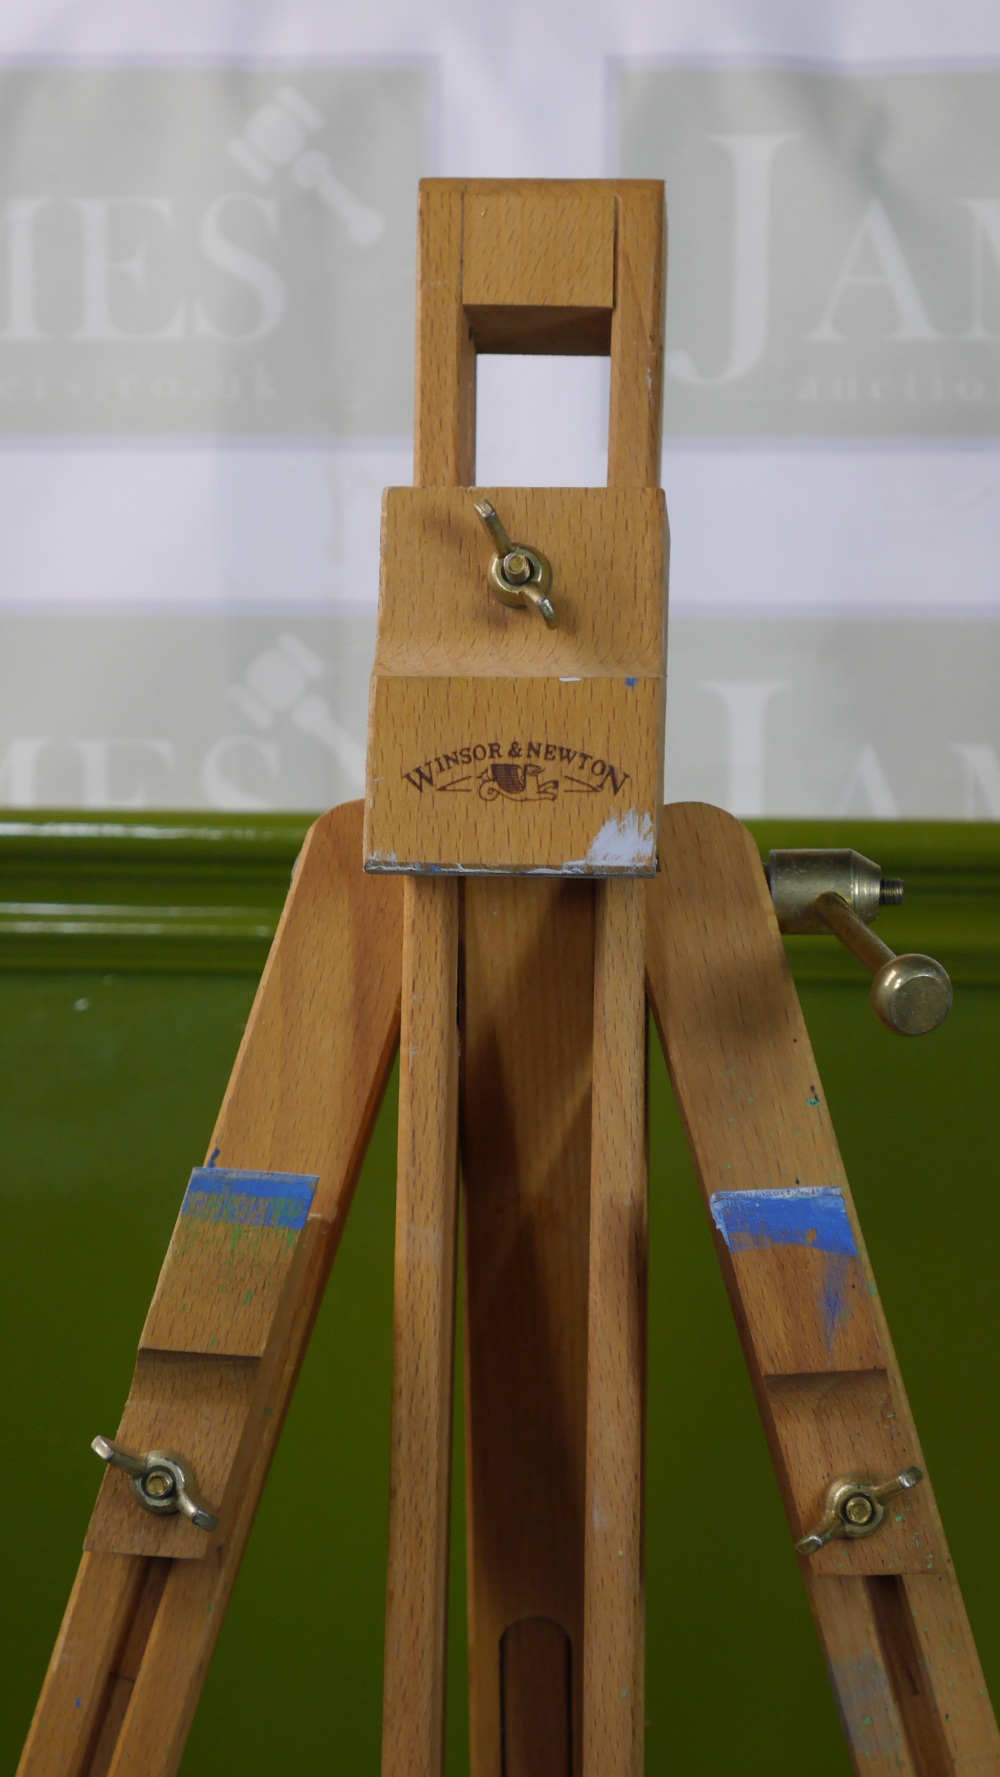 Lot 14 - Winsor and Newton Artist/Studio Easel